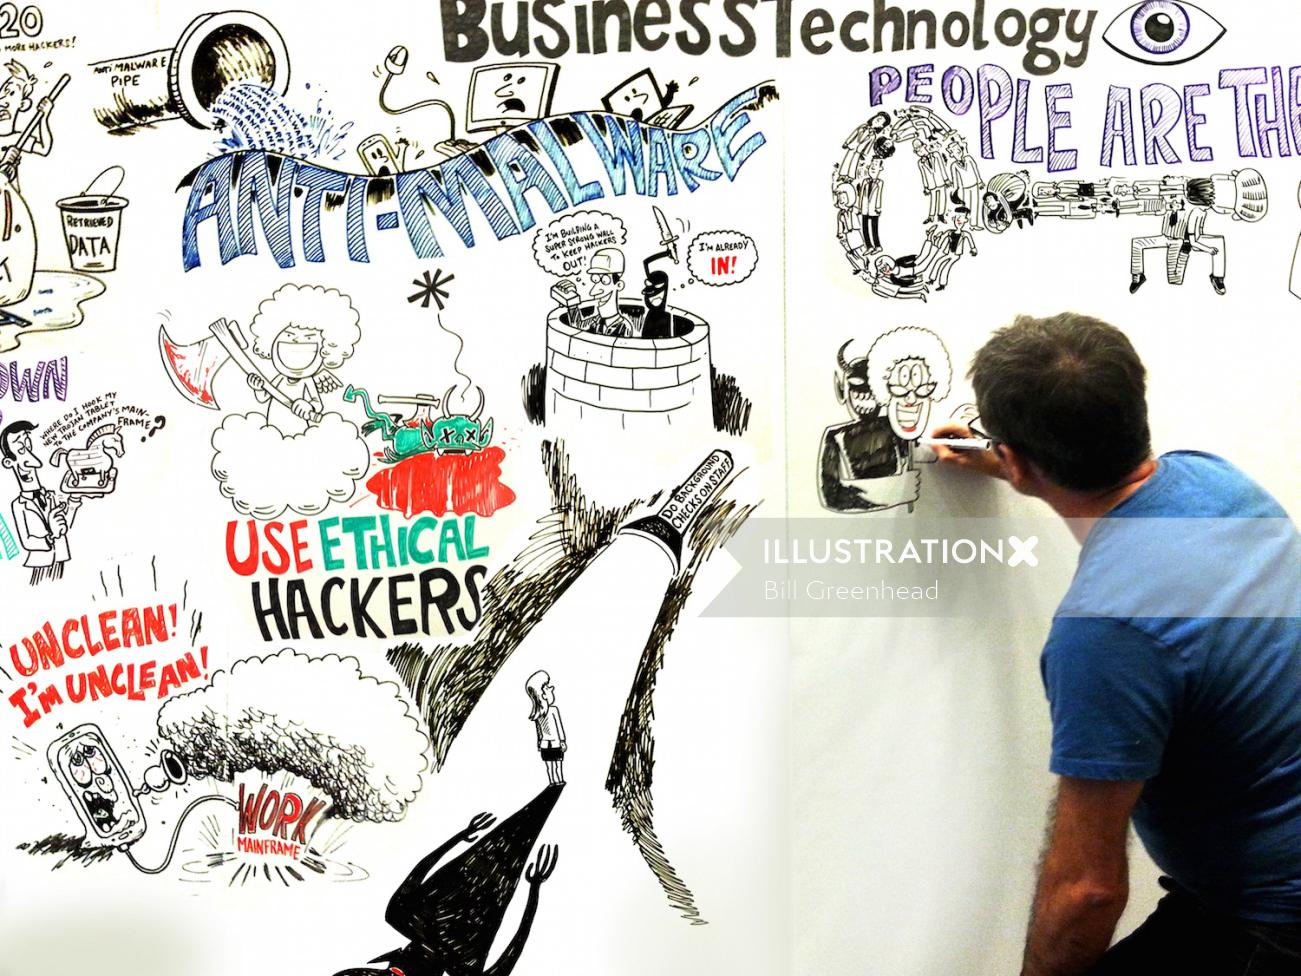 Live art on business technology by Bill Greenhead